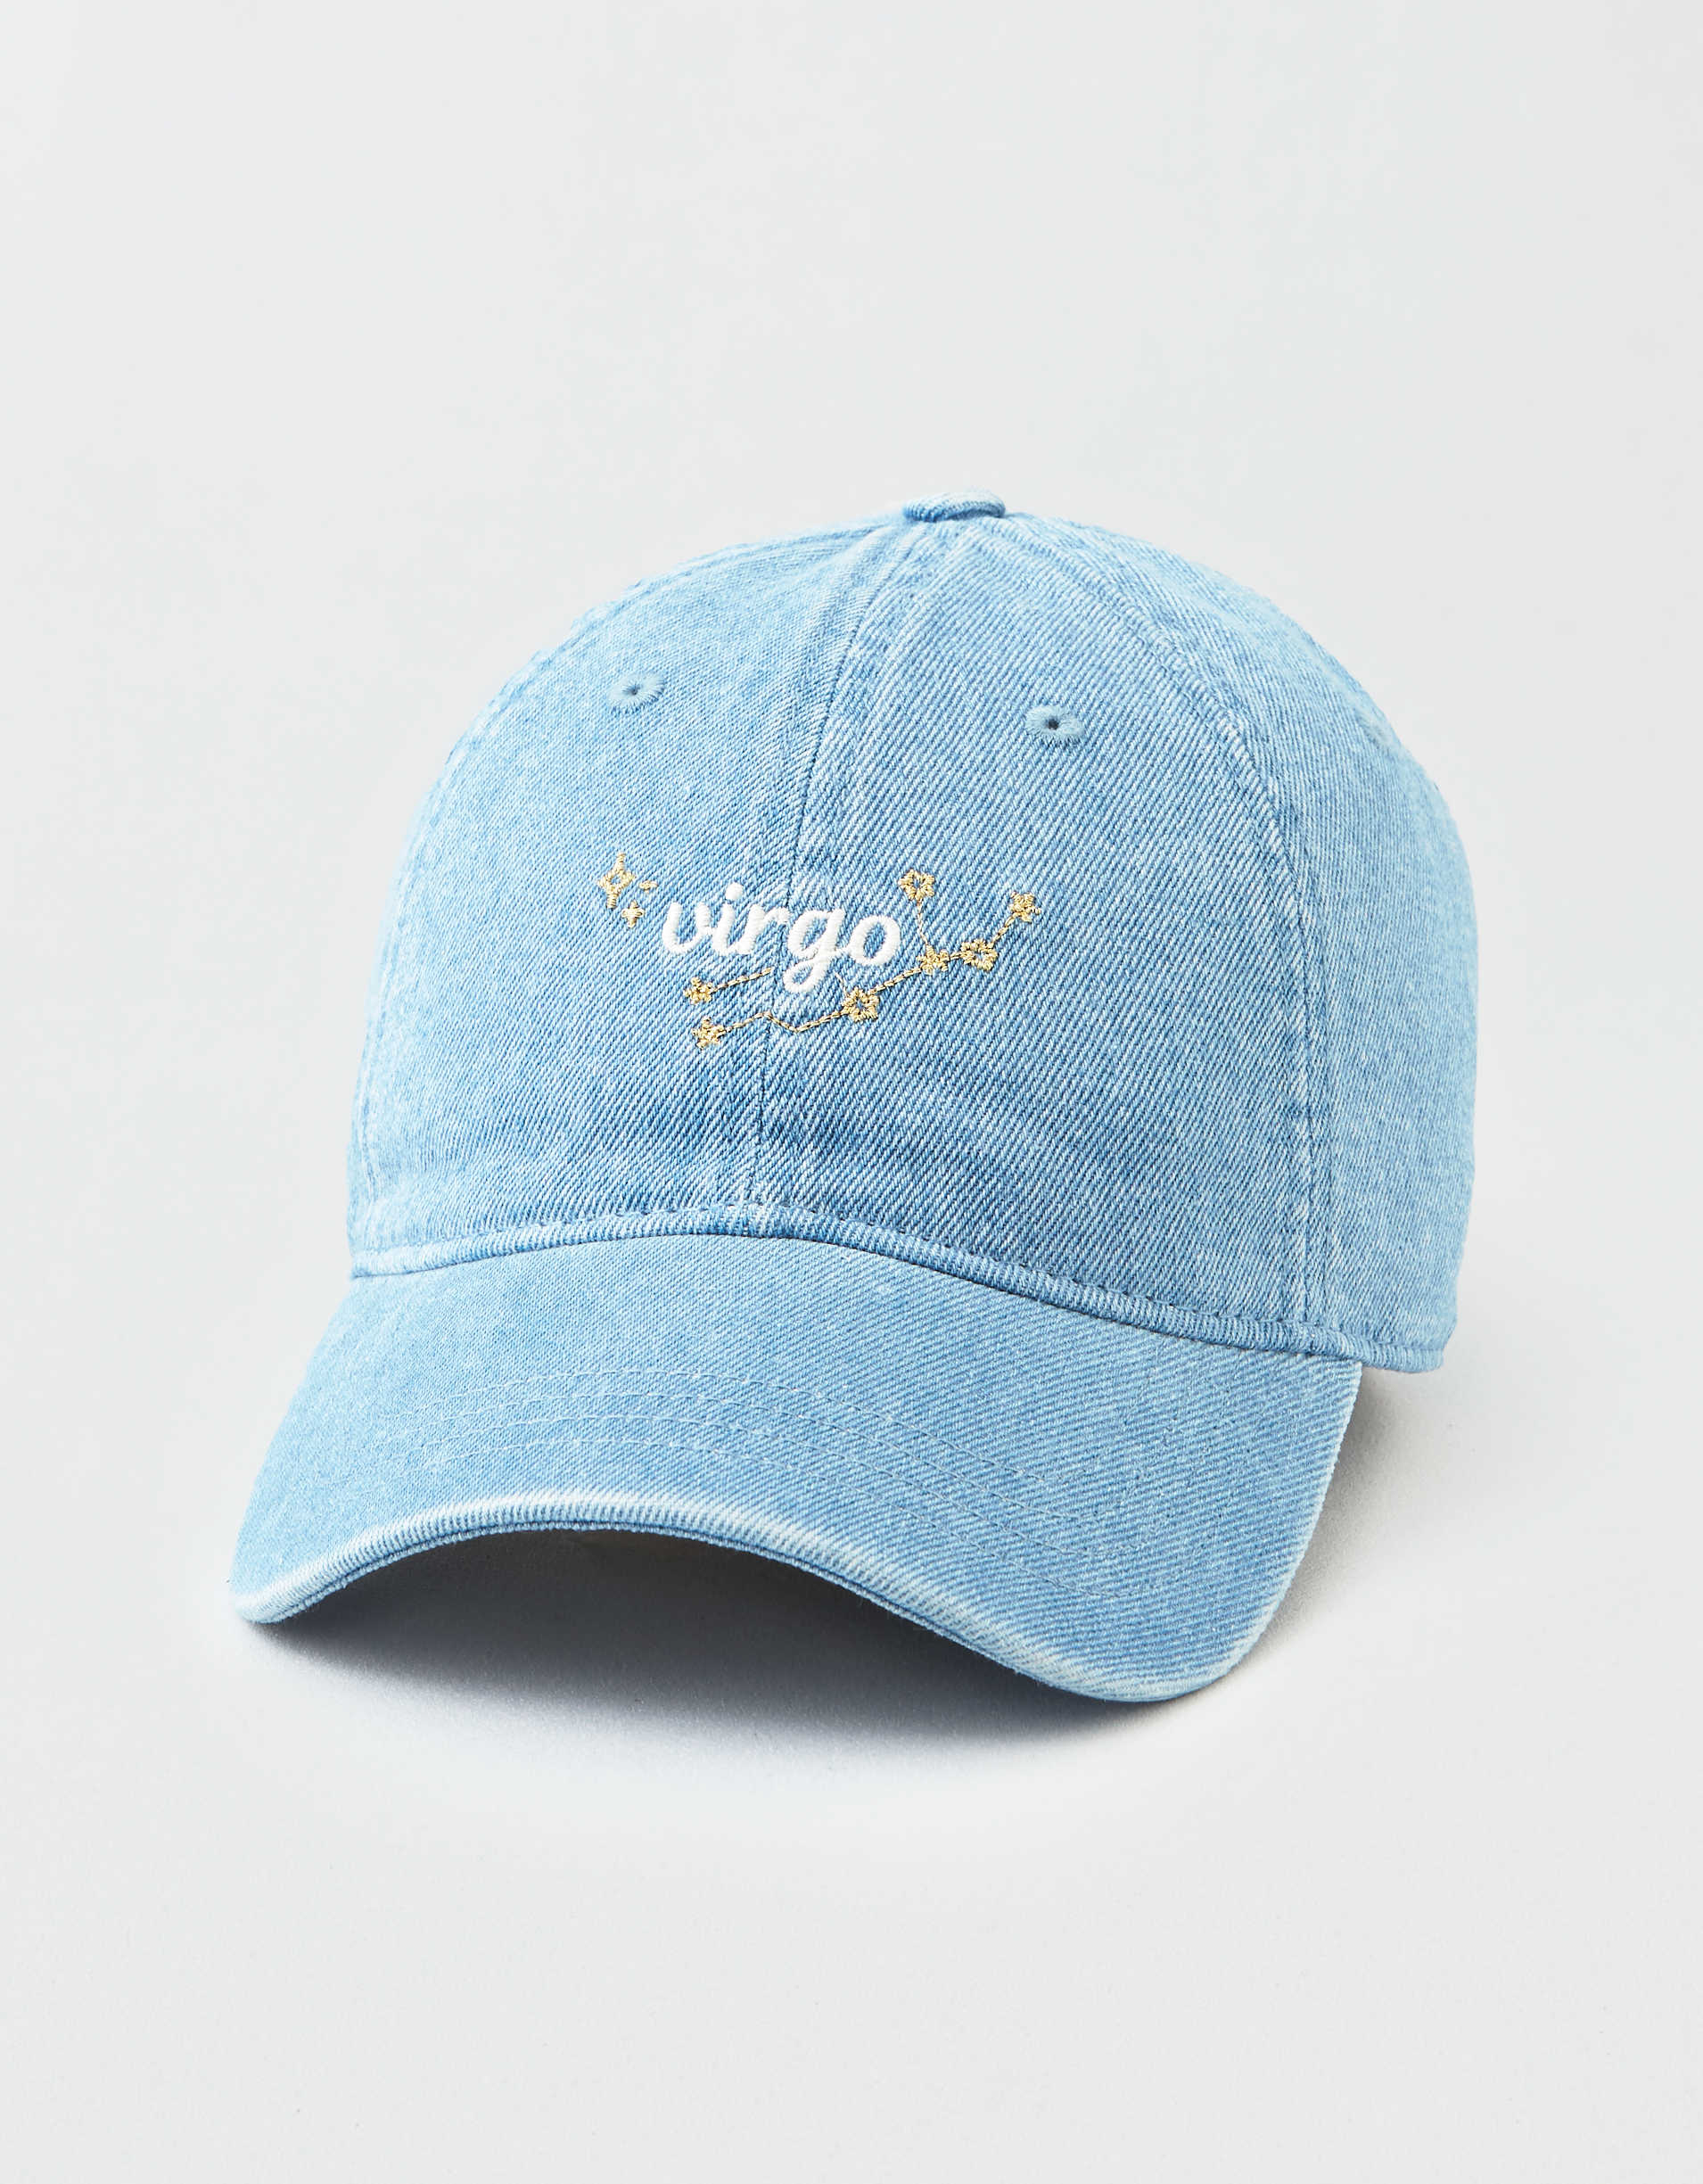 AE Virgo Baseball Hat